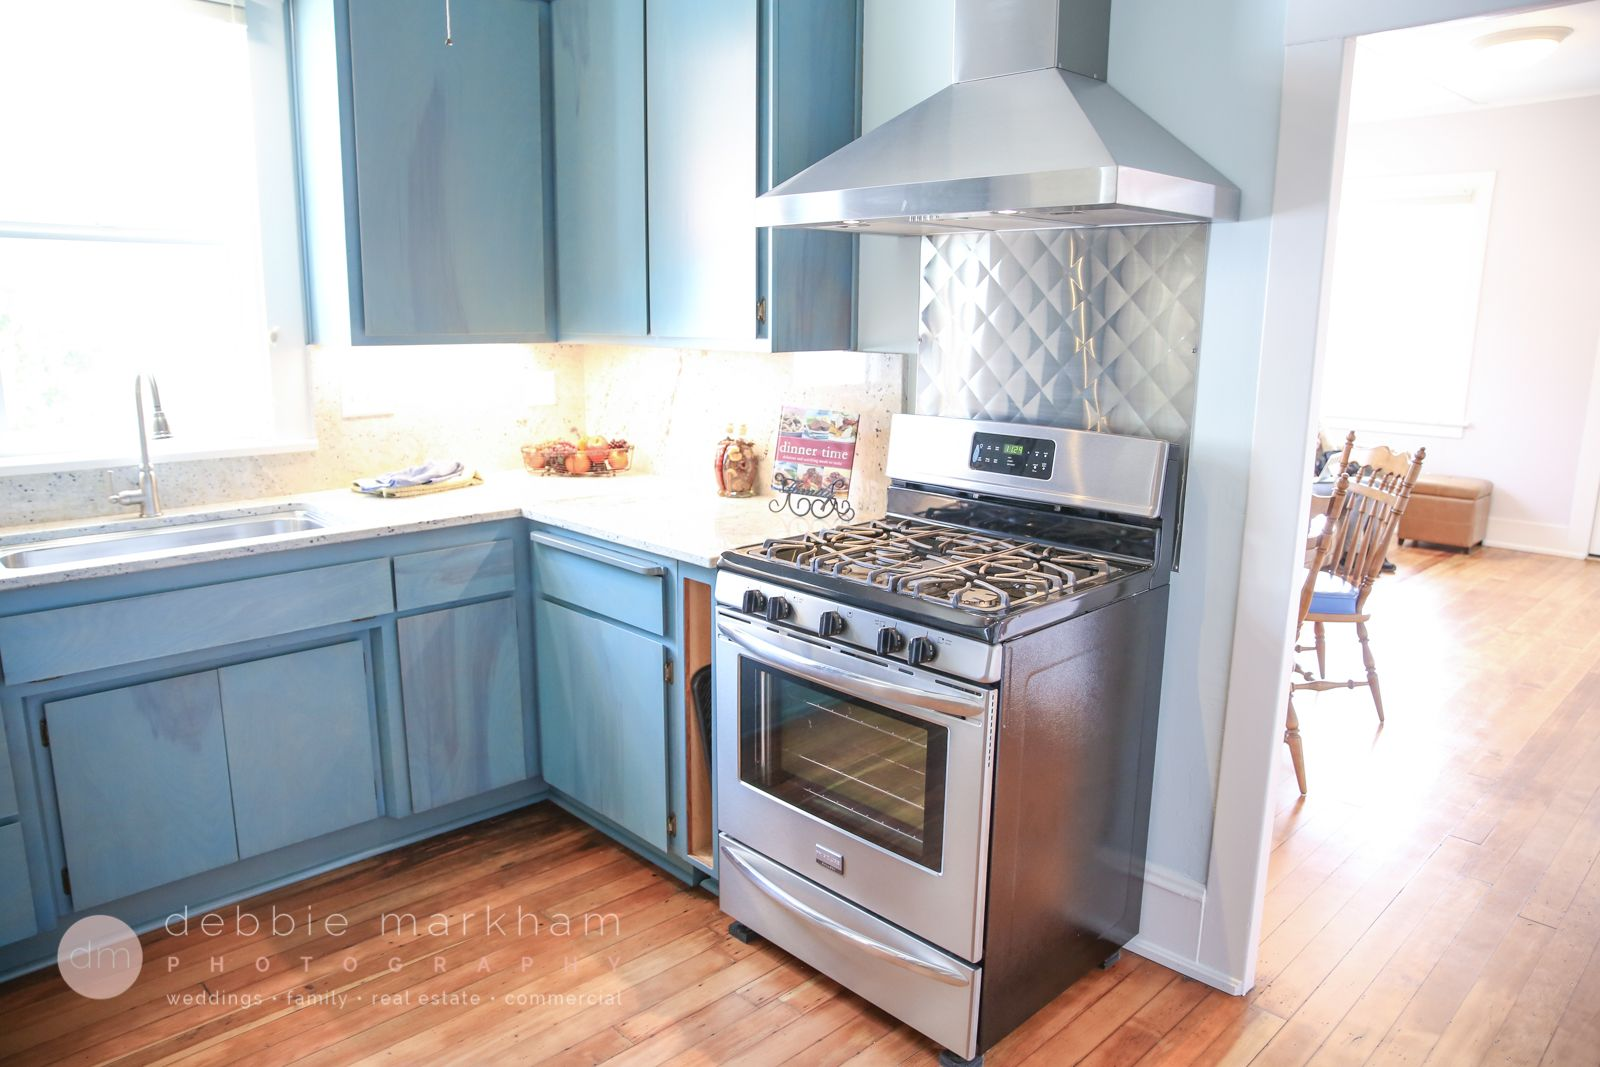 Tiffany Blue Kitchen Cabinets Pecan Wood Floor, Home for Sale. Real ...